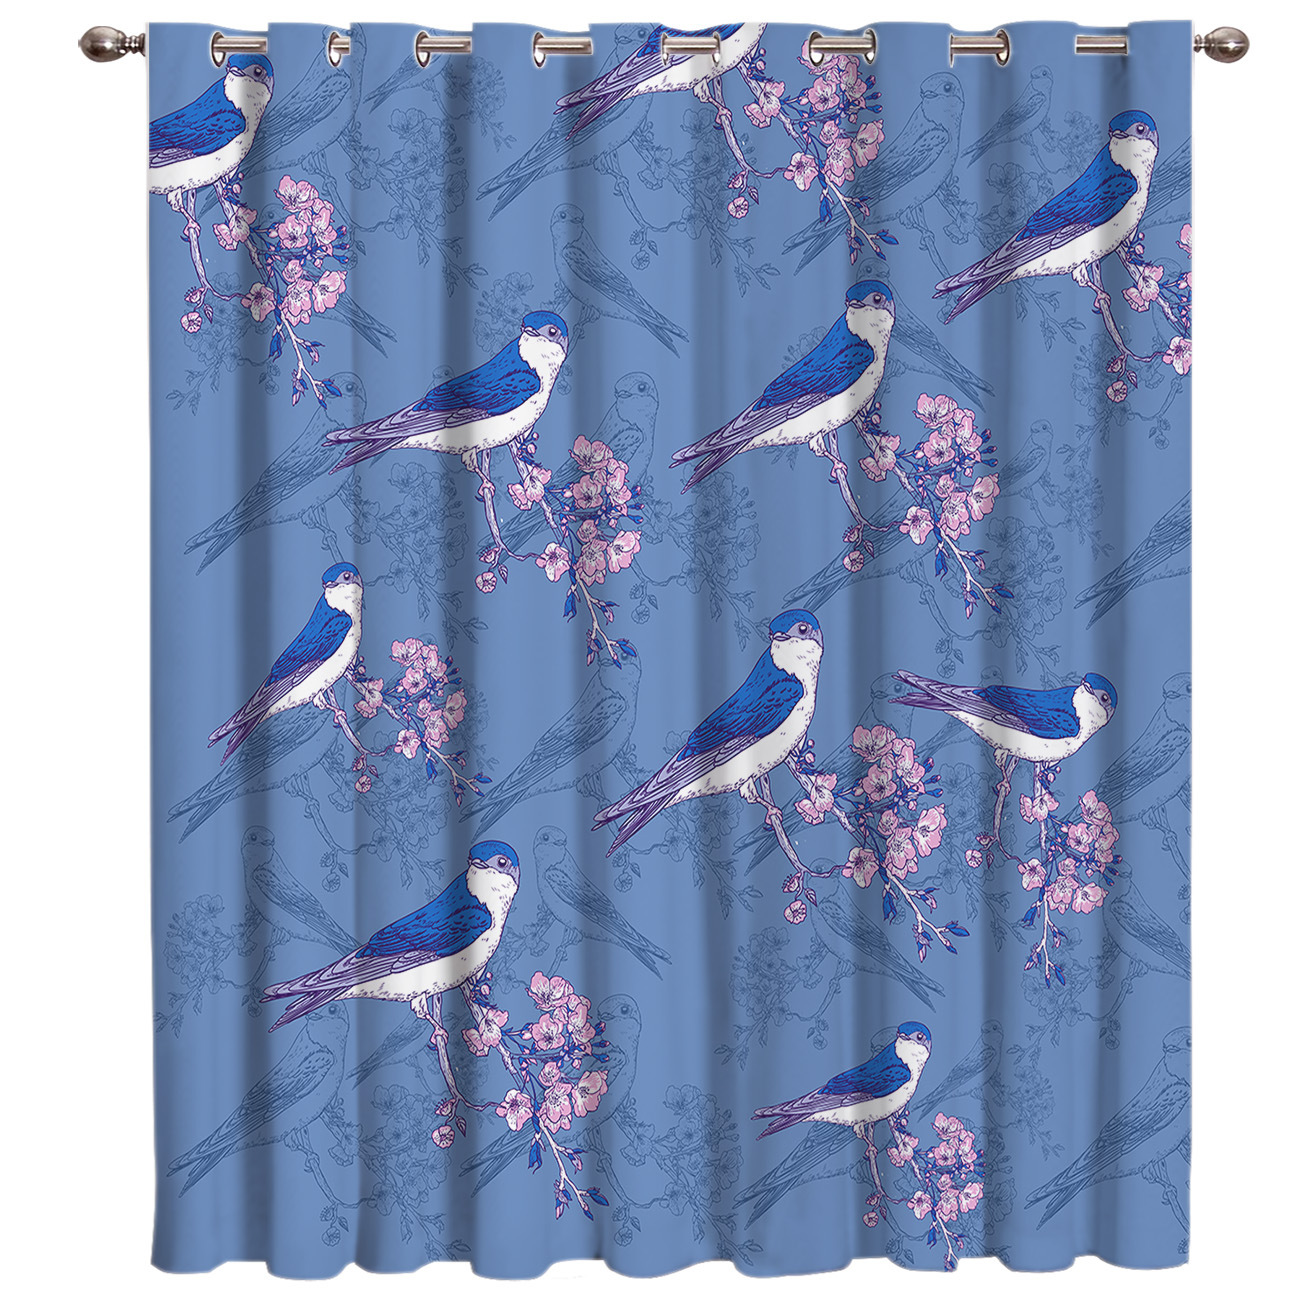 Birds On Plum Blossom Branches Window Treatments Curtains Valance Room Curtains Large Window Window Curtains Dark Living Room